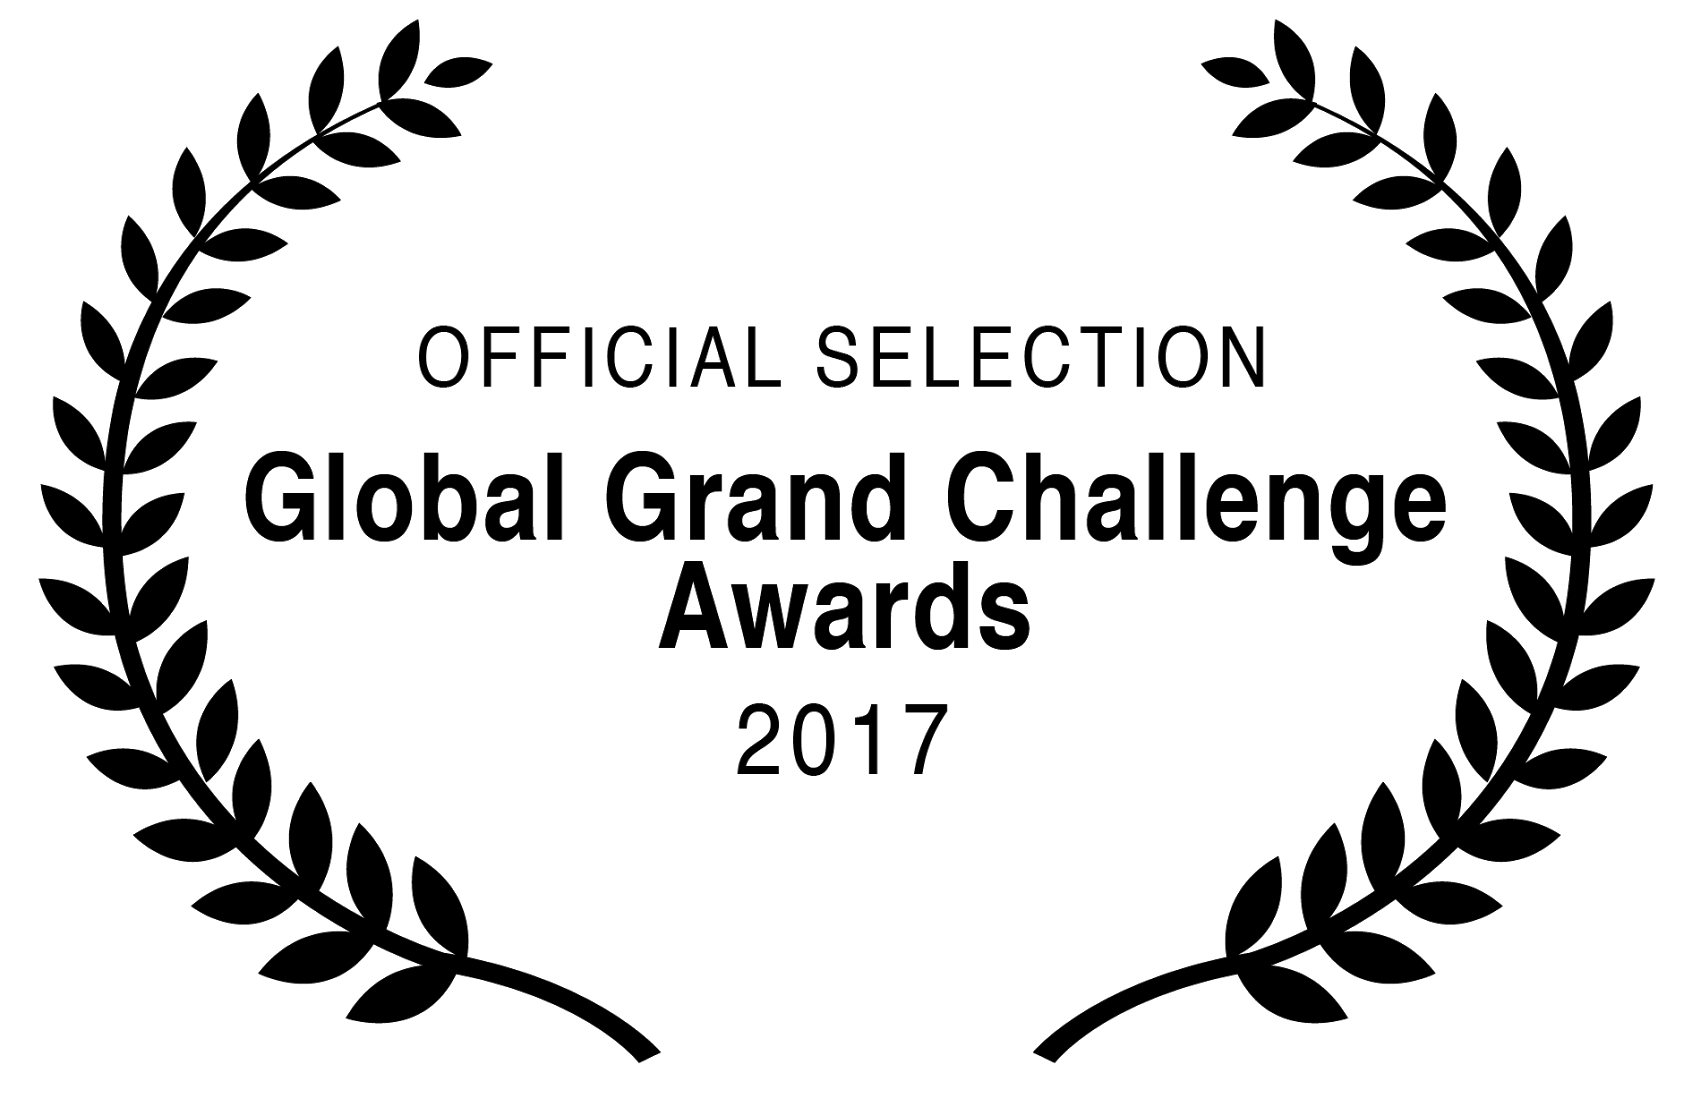 Global Grand Challenge Awards 2017